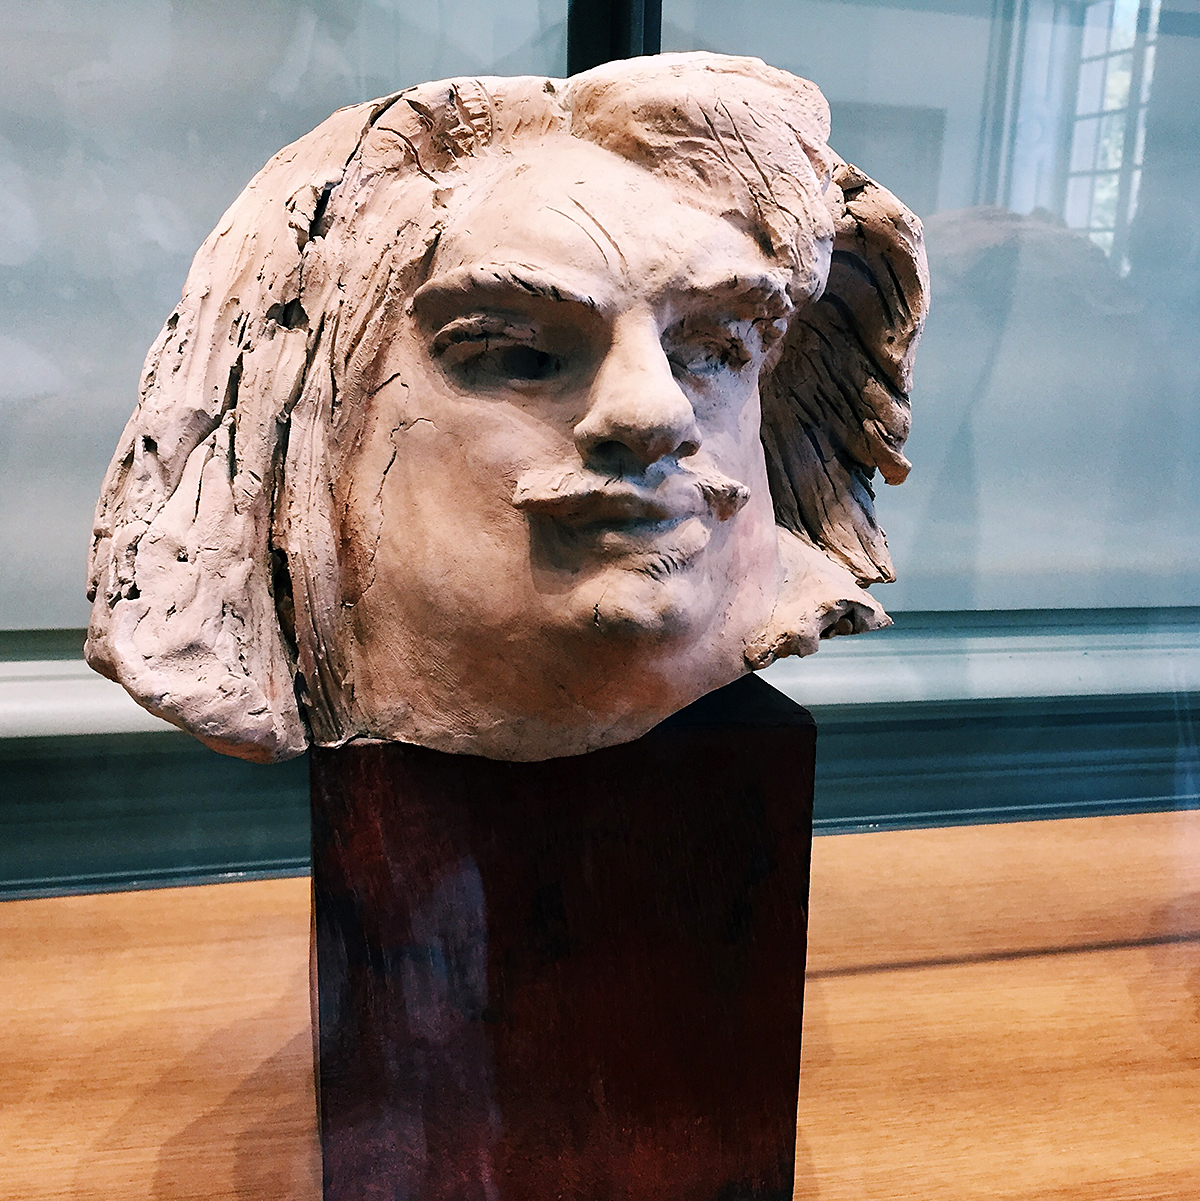 Ceramic bust of Balzac by Rodin, from the Rodin museum